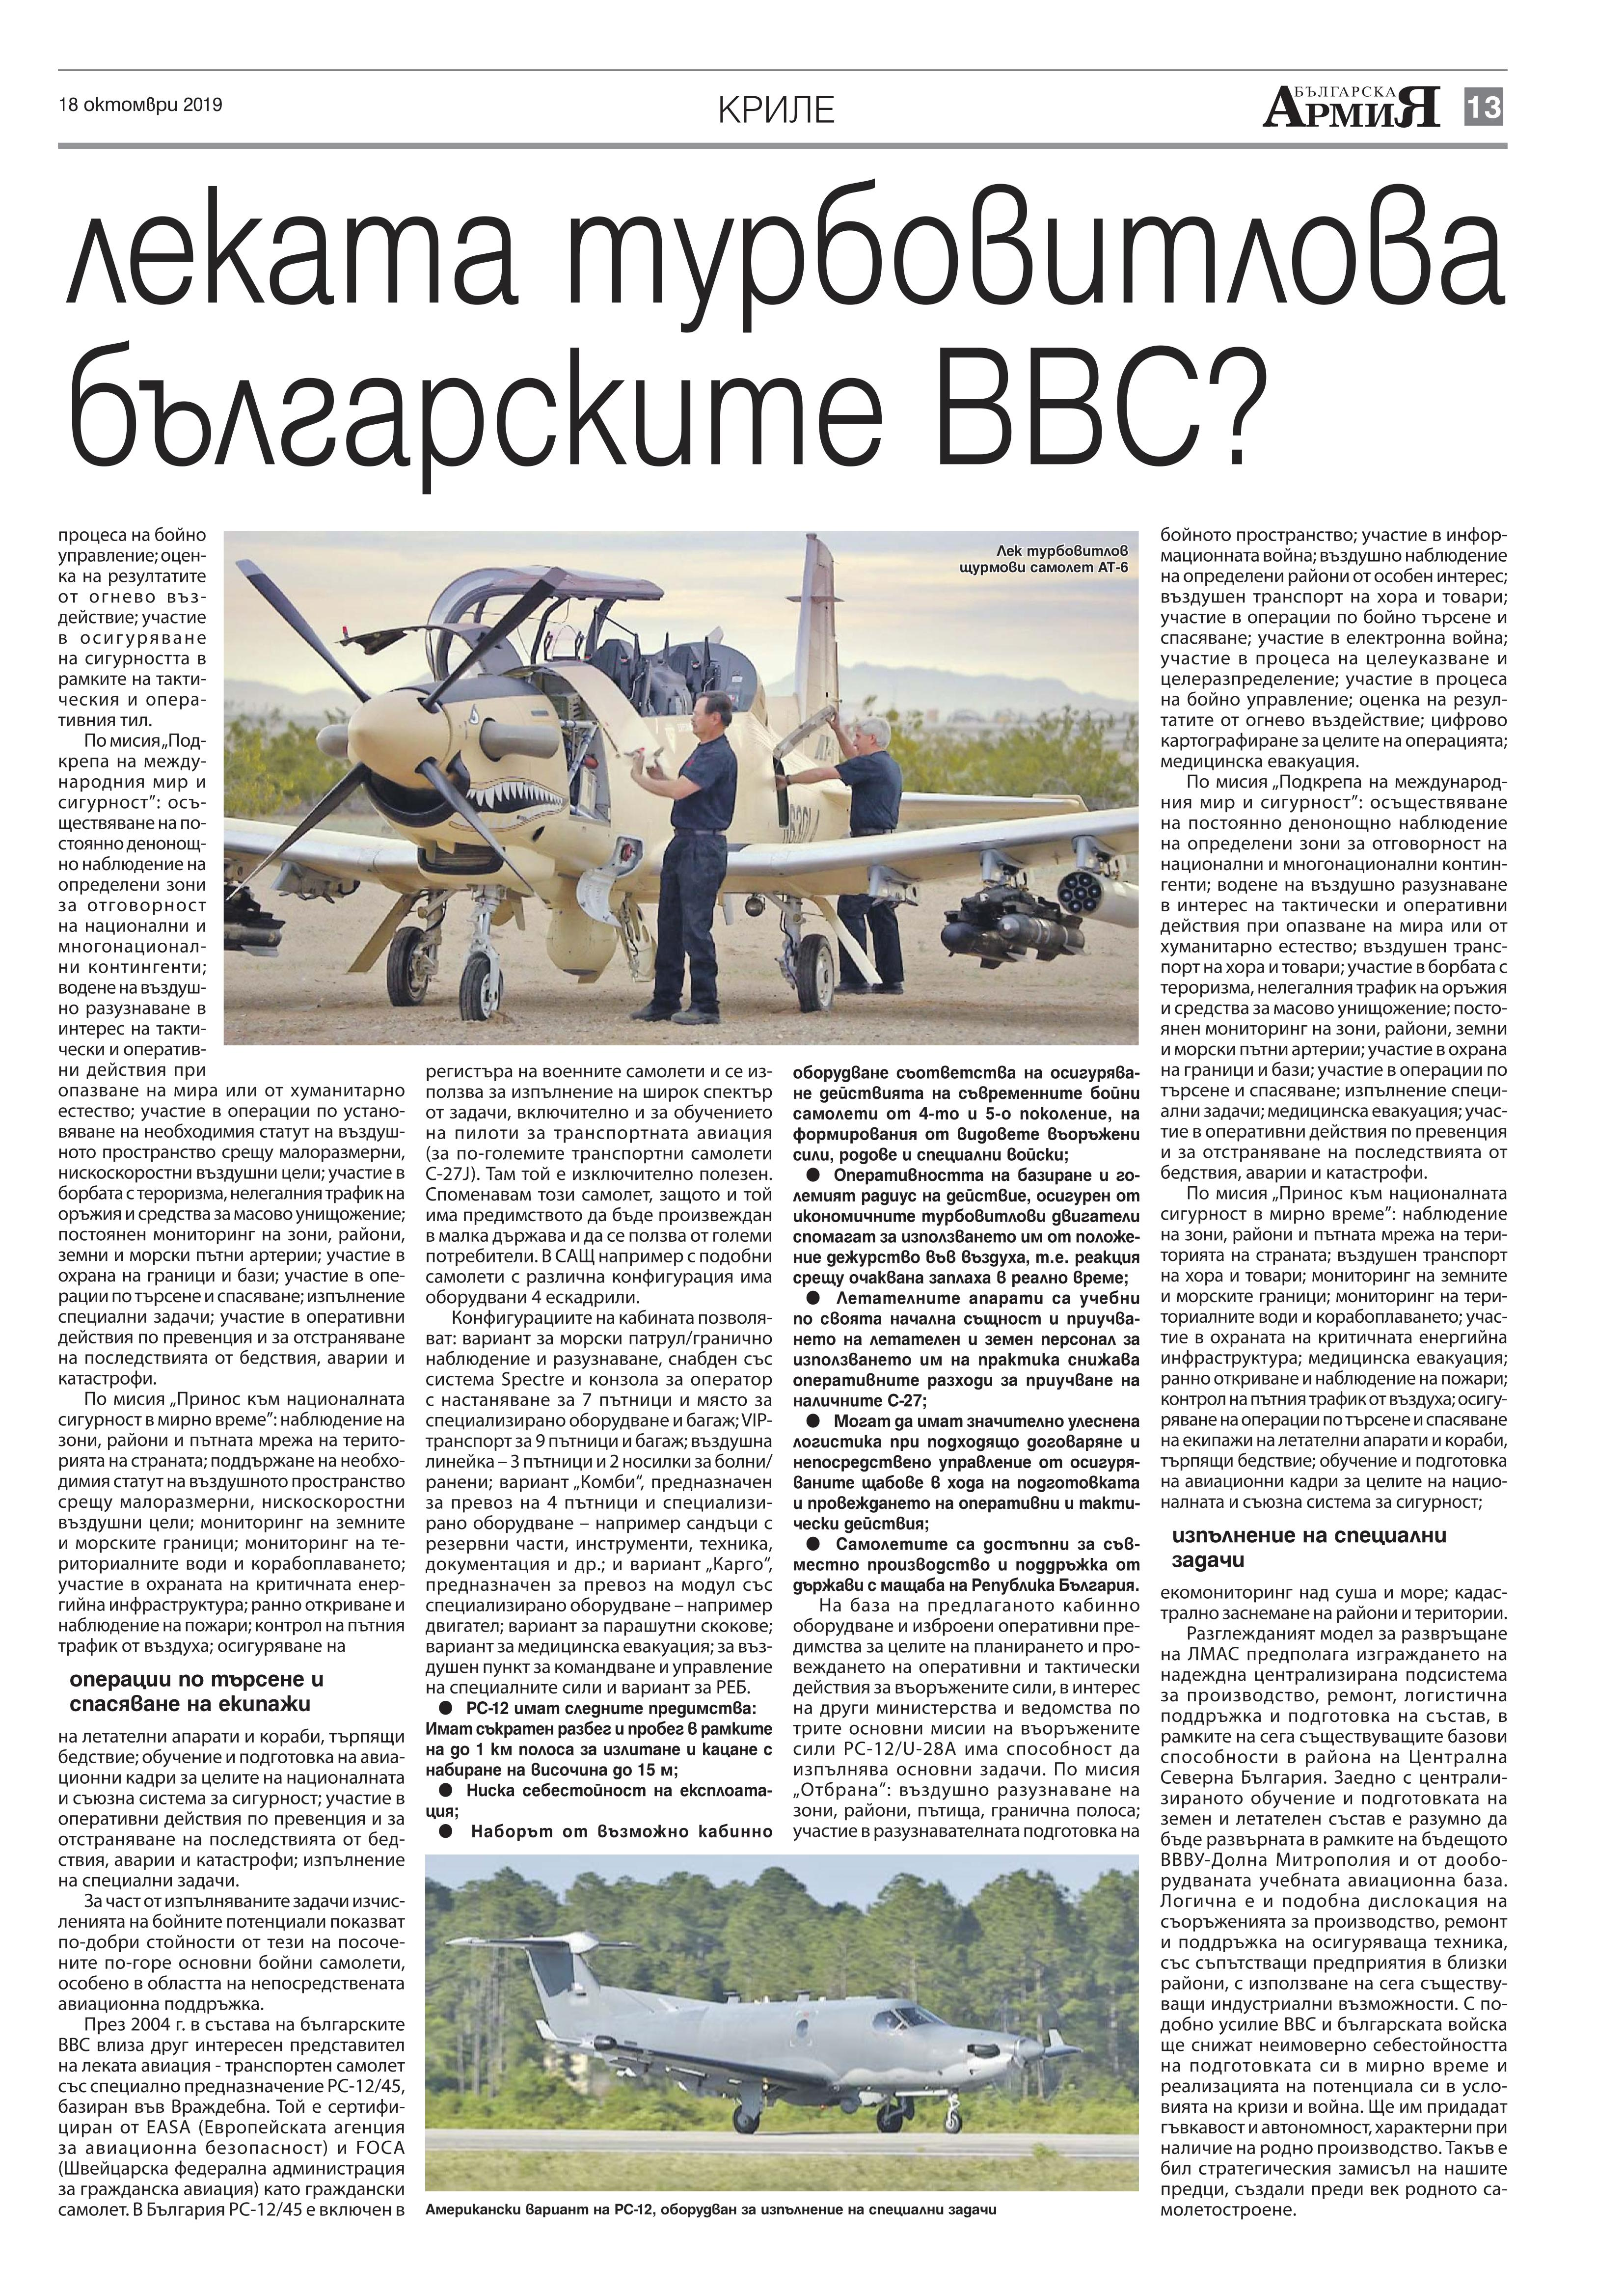 https://www.armymedia.bg/wp-content/uploads/2015/06/13.page1_-112.jpg